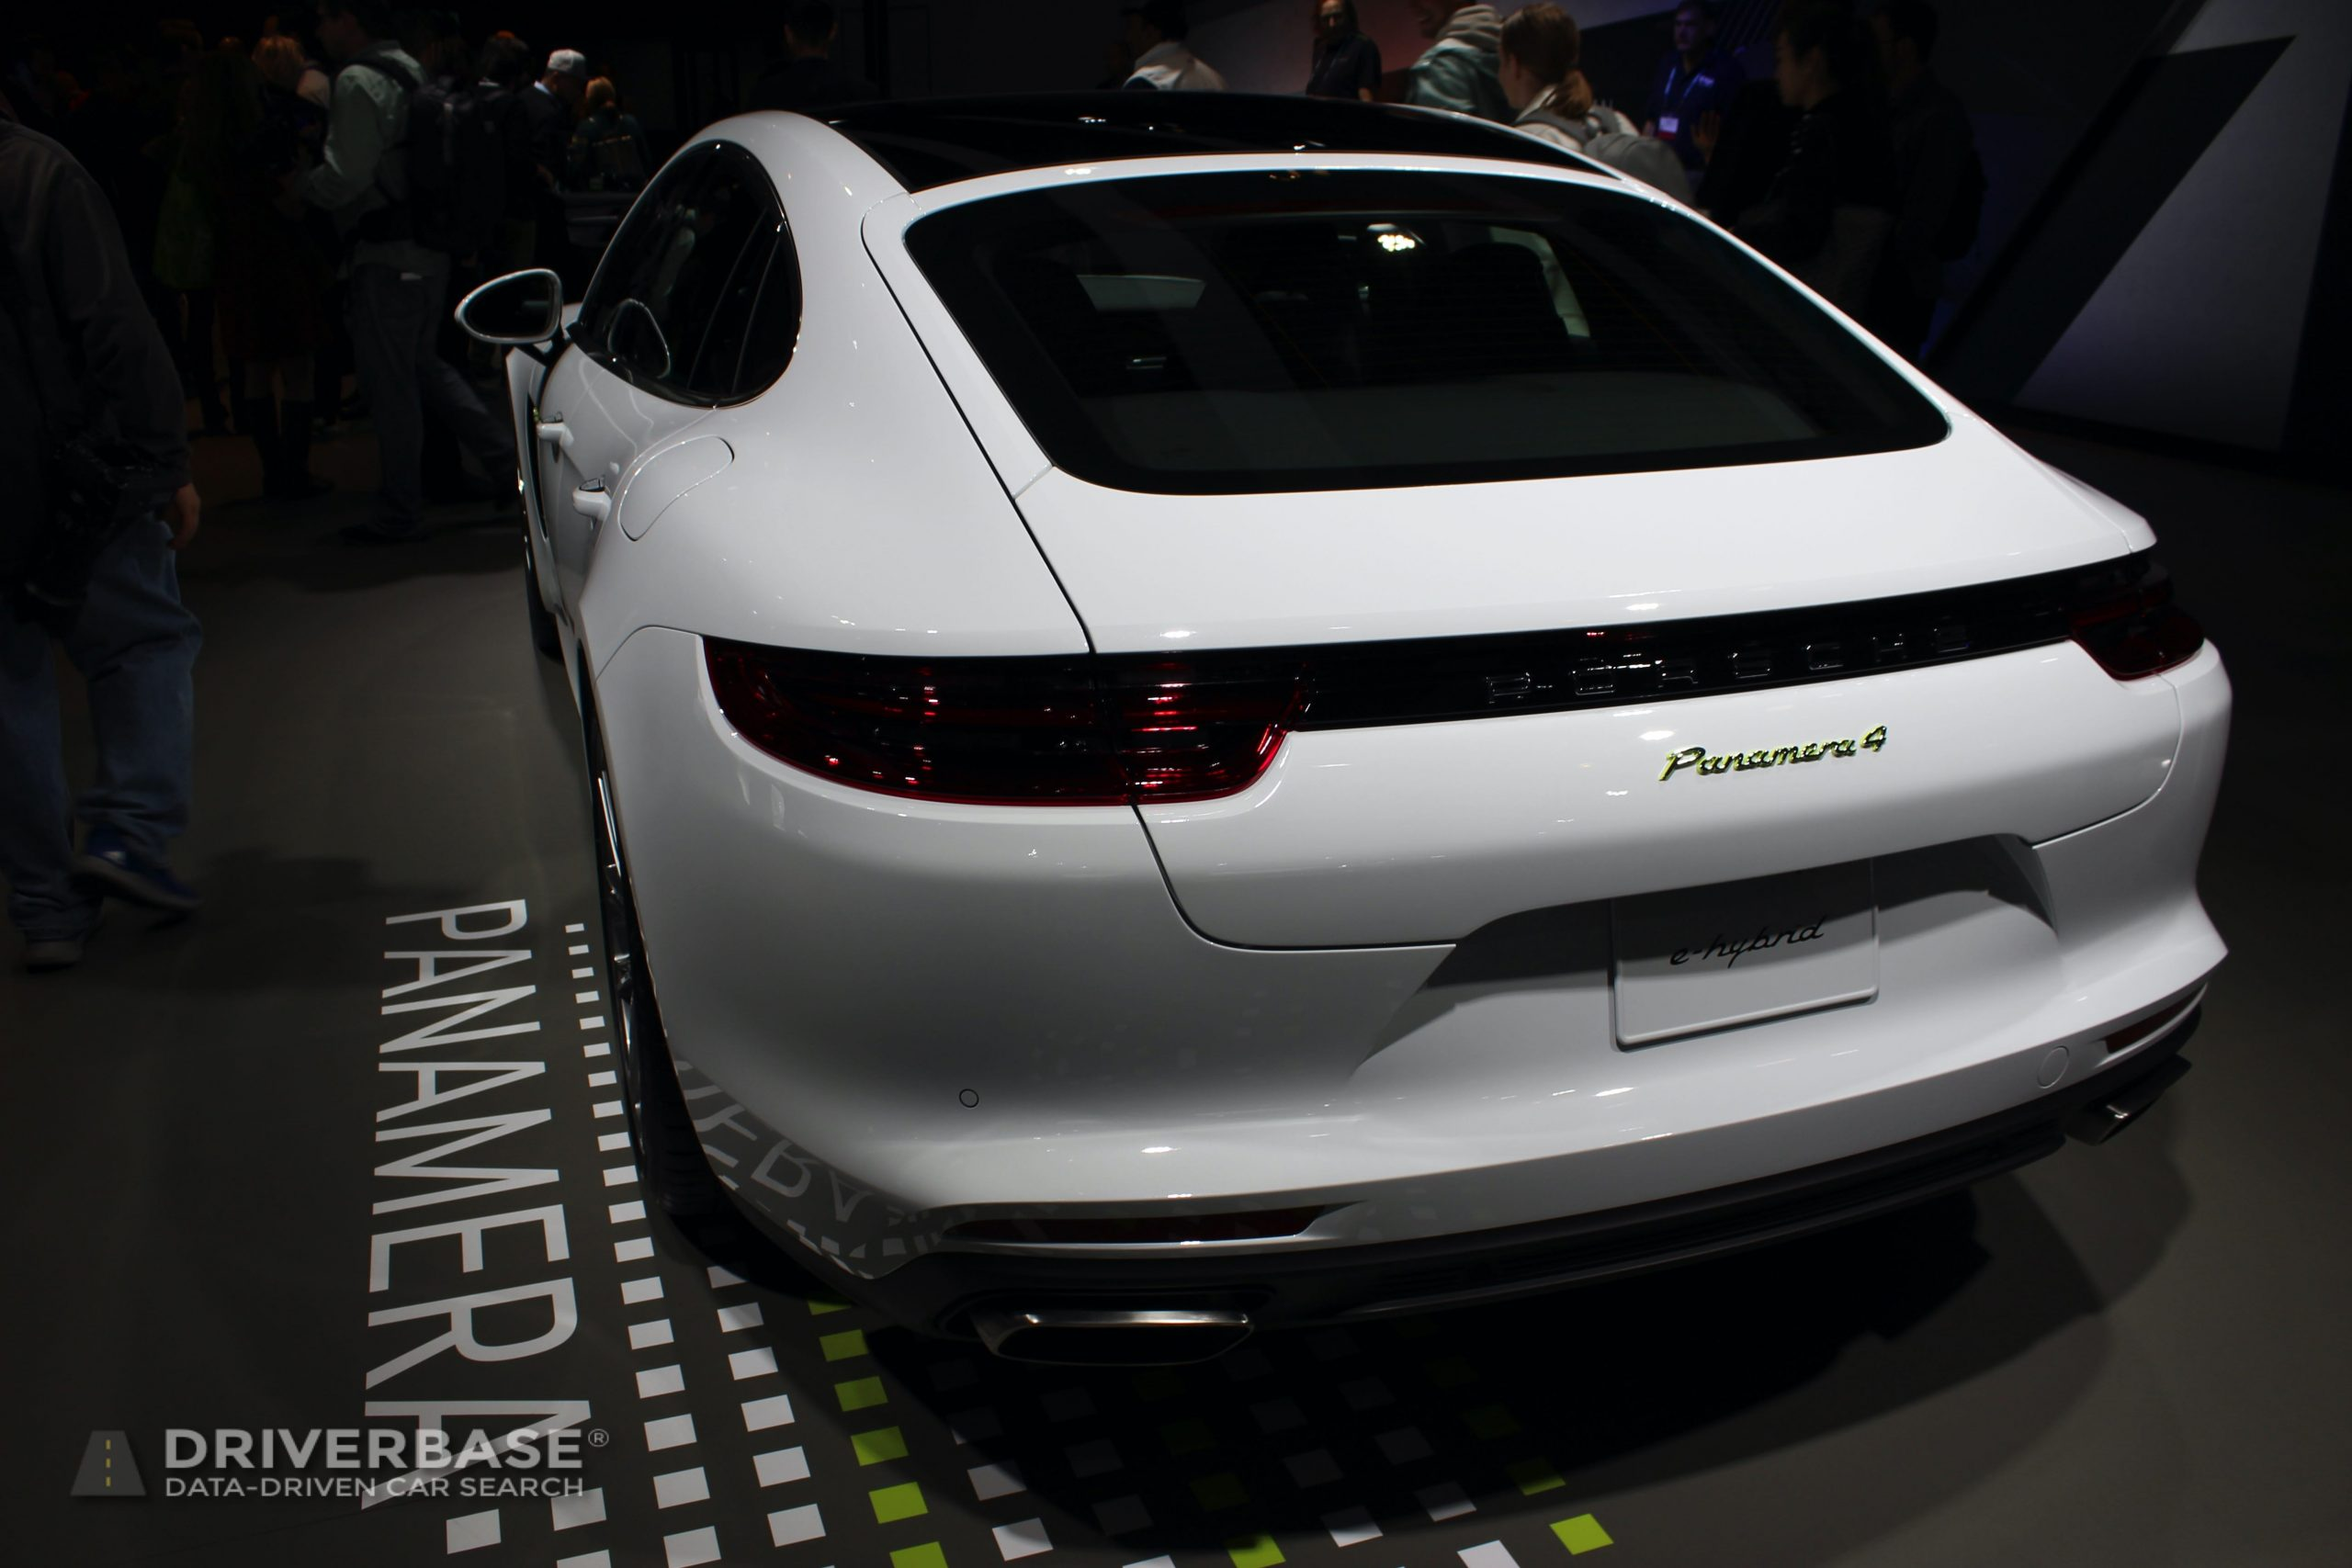 2020 Porsche Panamera 4 e-Hybrid at the 2019 Los Angeles Auto Show